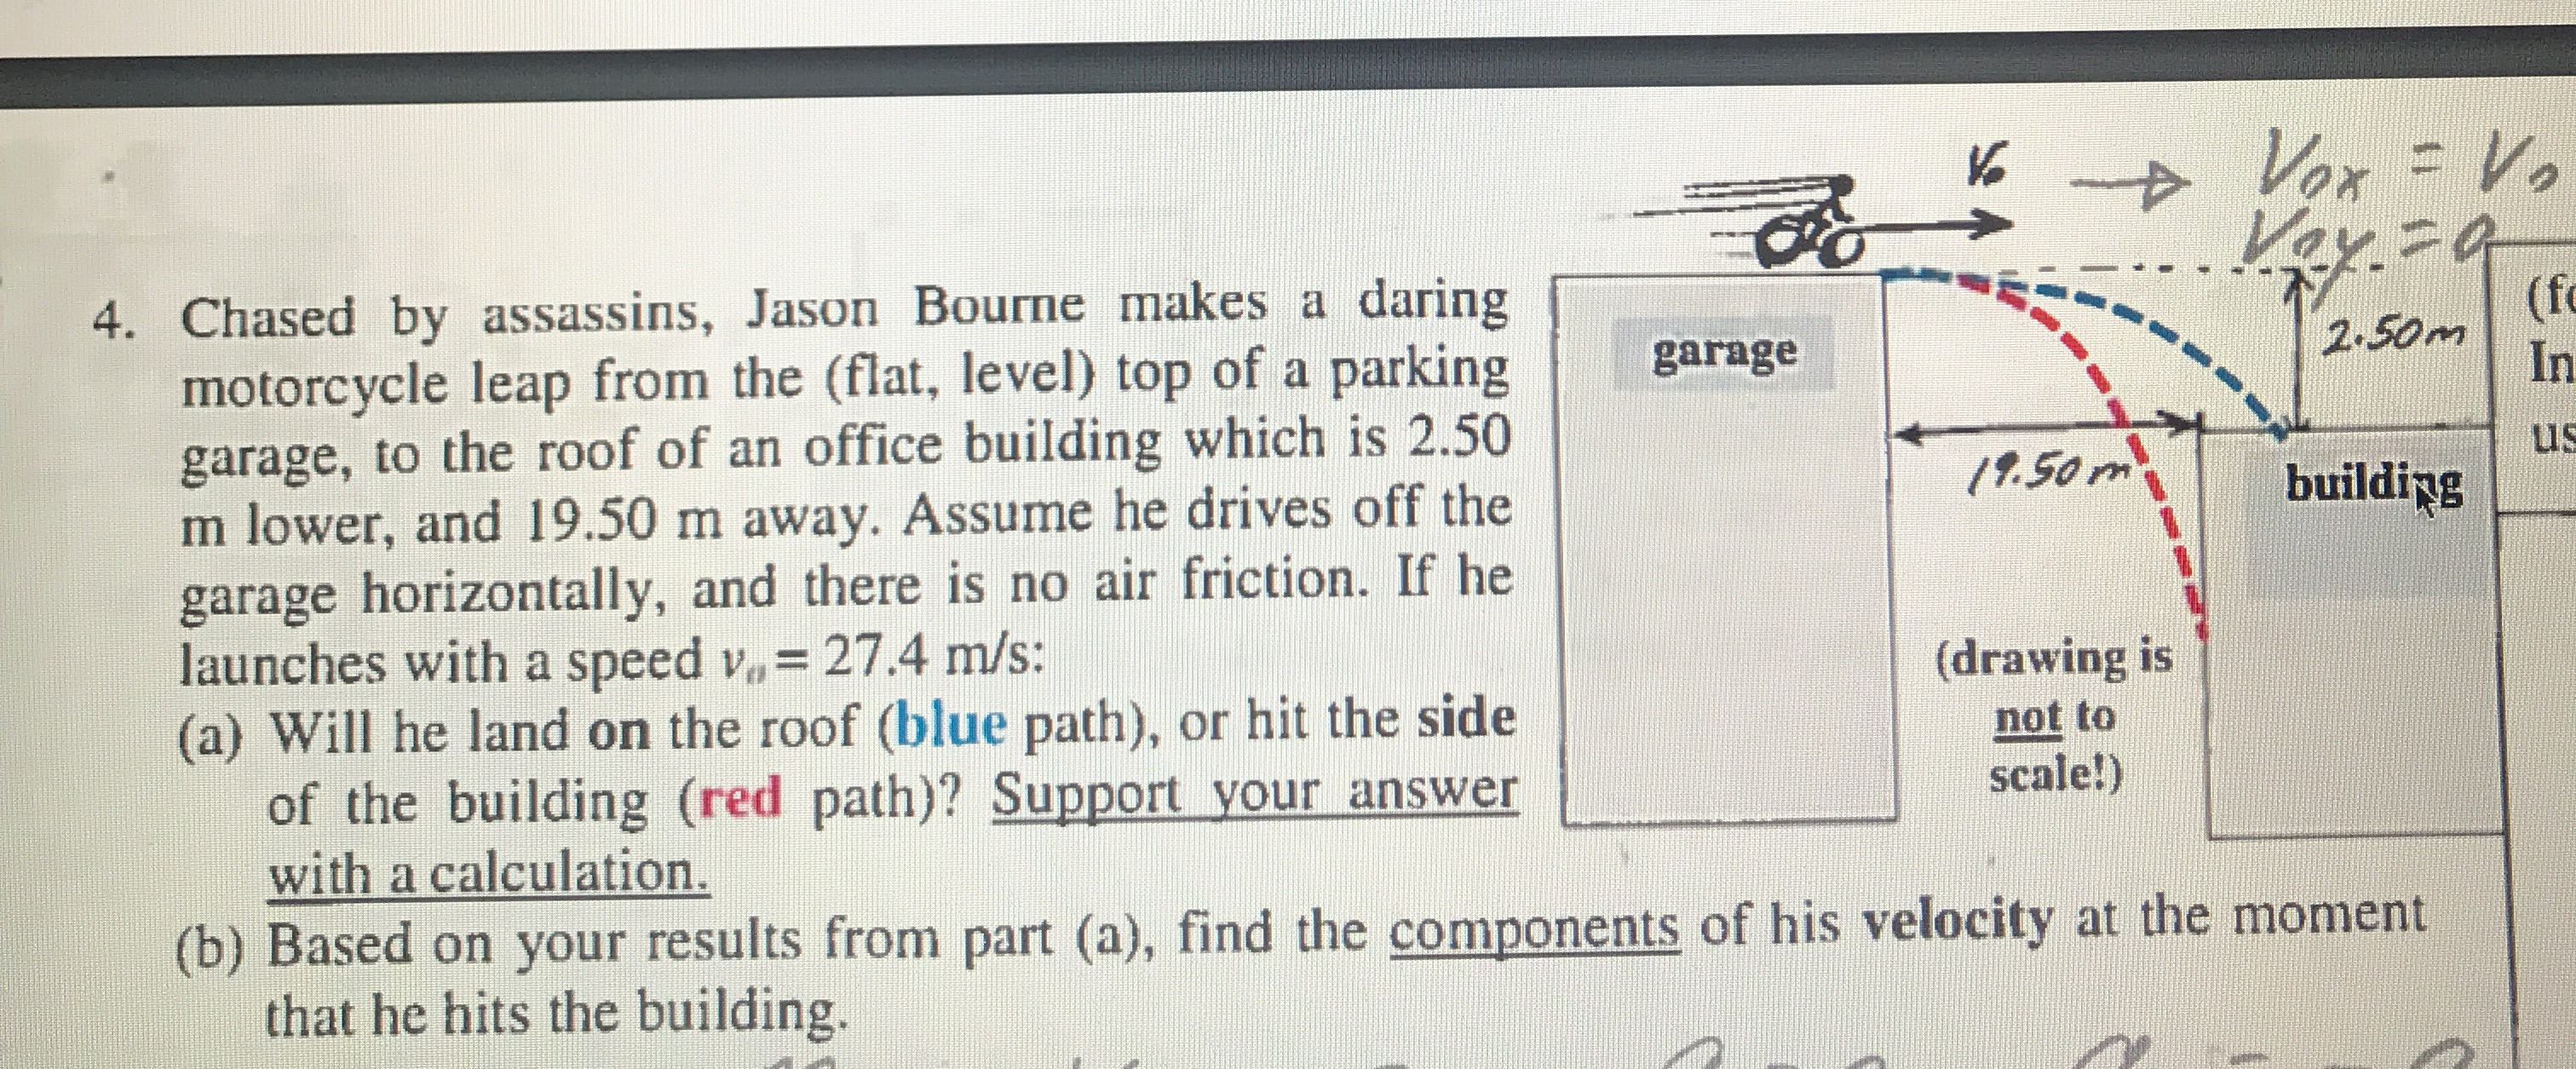 Vox = Vo Vay =a 4. Chased by assassins, Jason Bourne makes a daring motorcycle leap from the (flat, level) top of a parking garage, to the roof of an office building which is 2.50 m lower, and 19.50 m away. Assume he drives off the garage horizontally, and there is no air friction. If he launches with a speed v= 27.4 m/s: (a) Will he land on the roof (blue path), or hit the side of the building (red path)? Support your answer with a calculation. (b) Based on your results from part (a), find the components of his velocity at the moment that he hits the building. (fc 2.50m In b.29 garage us 19.50m buildigg (drawing is not to scale!)